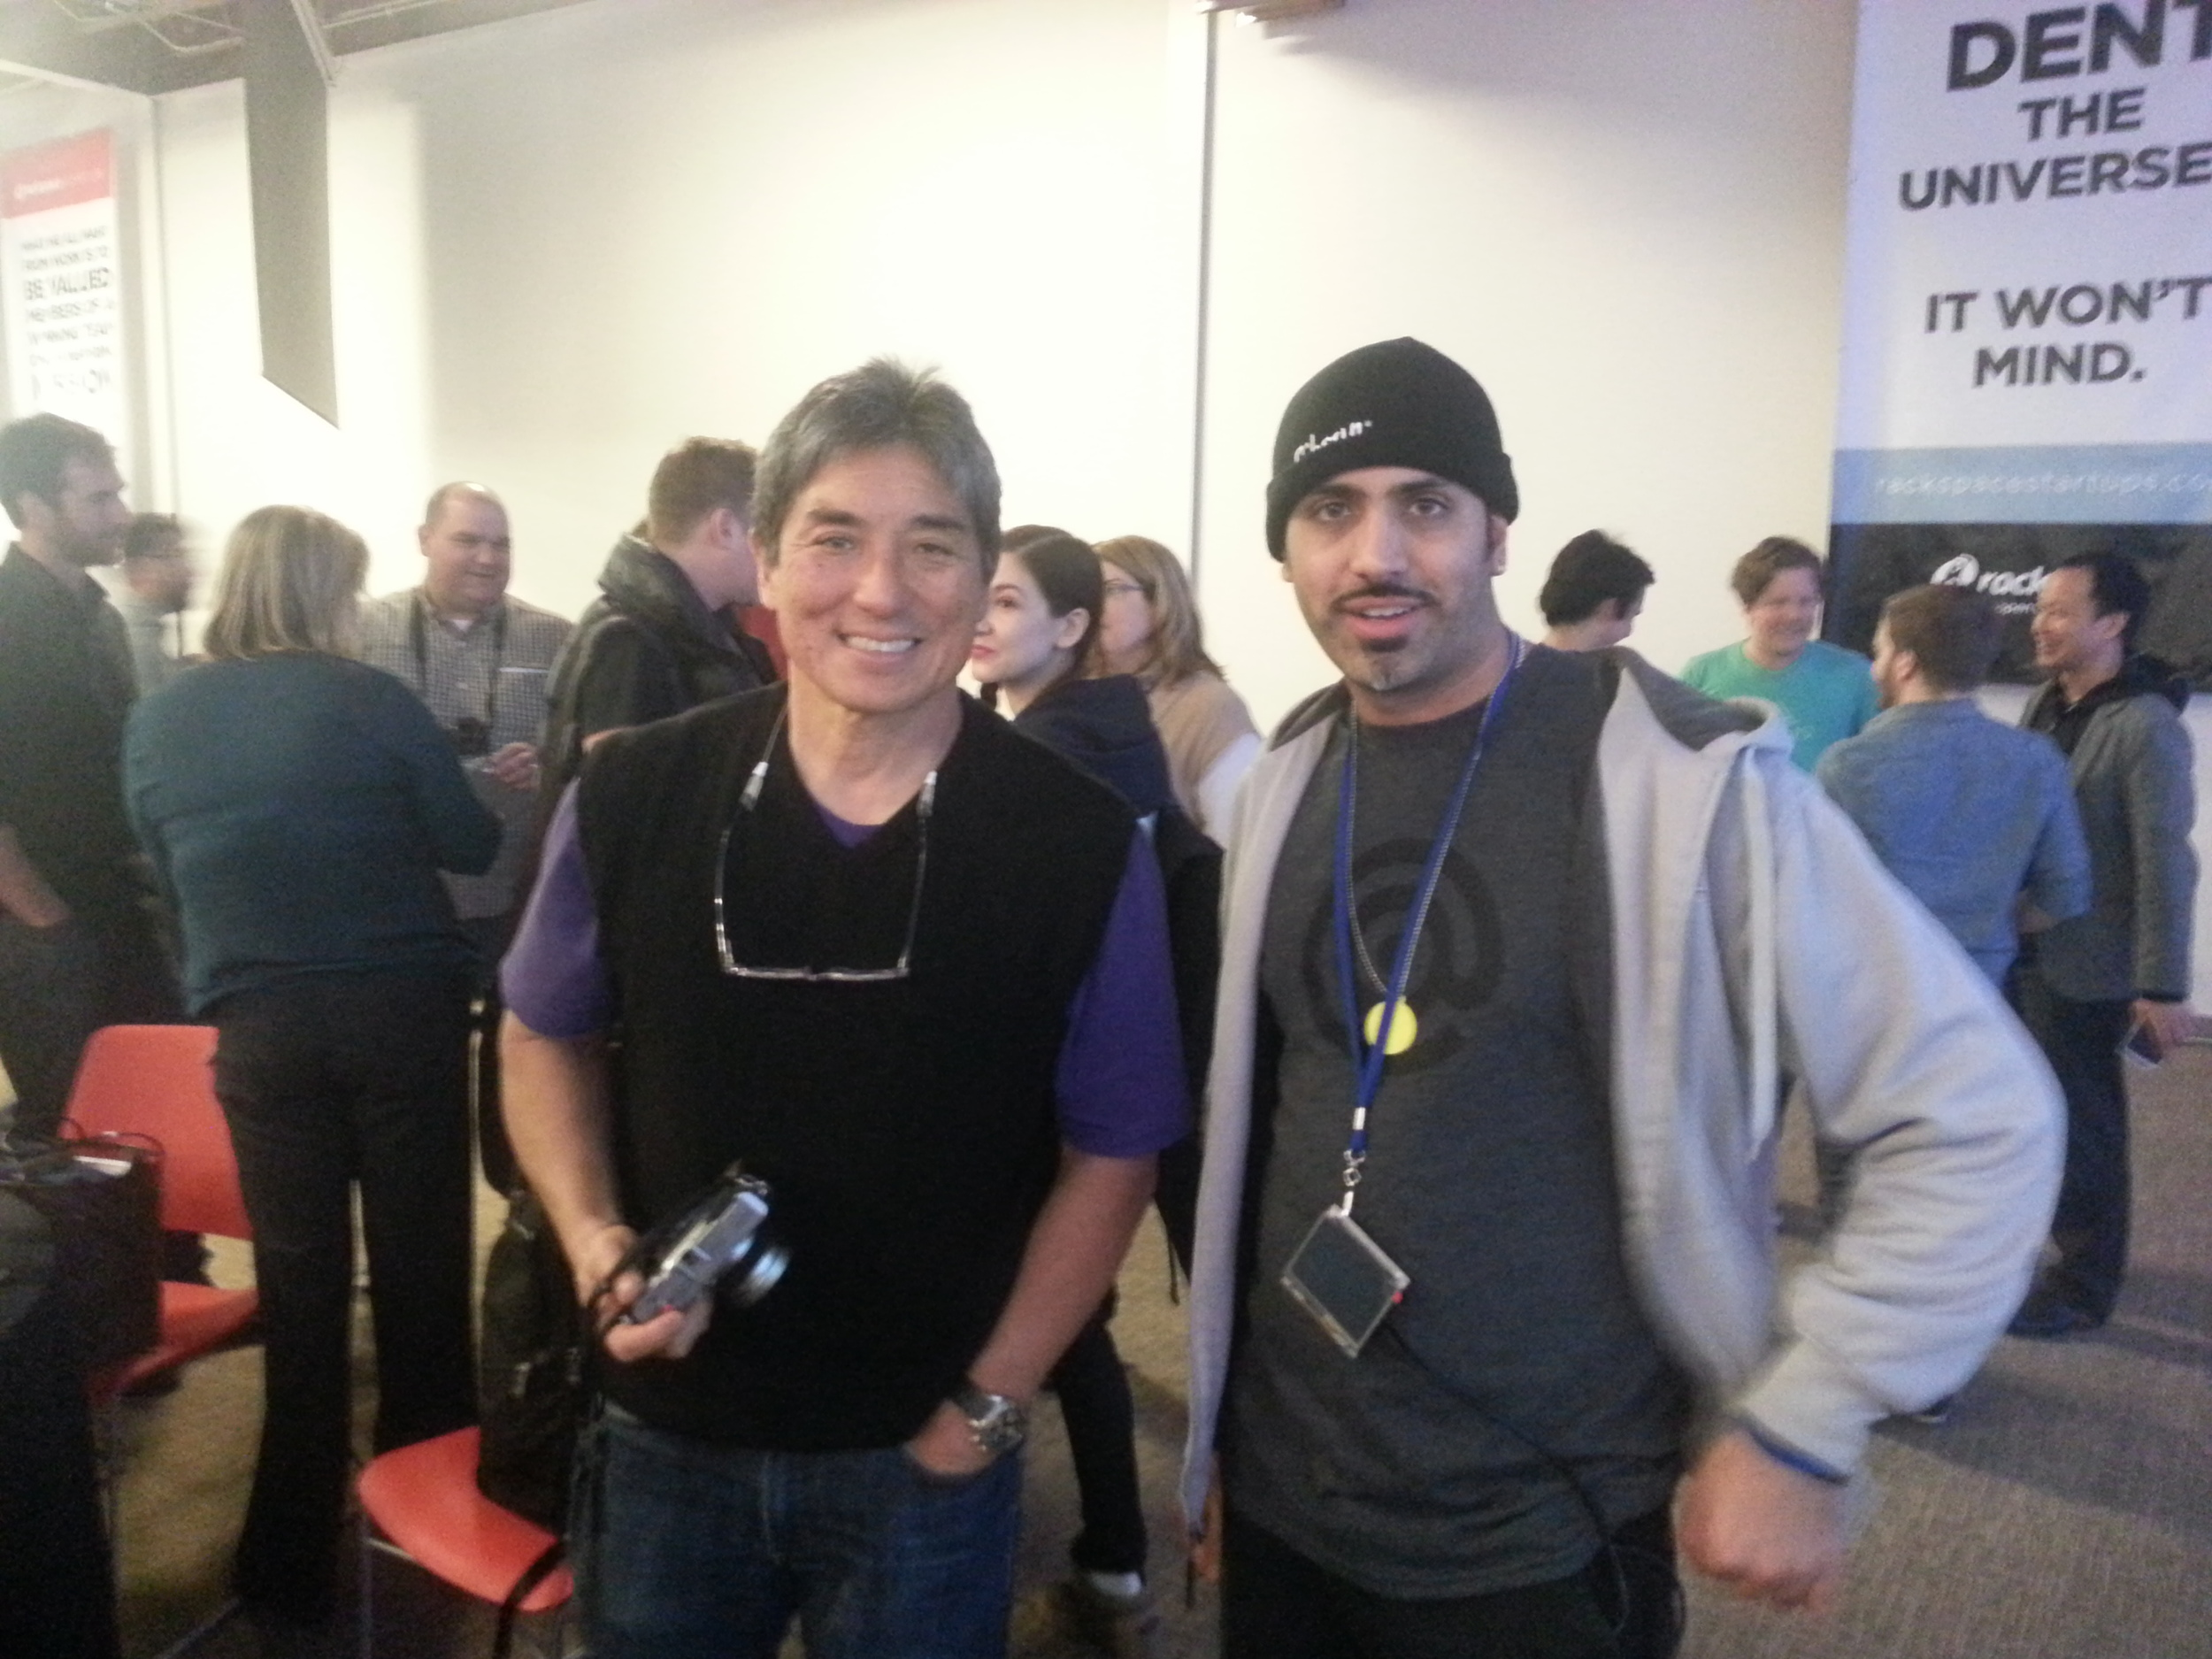 This is Guy Kawasaki the chief evangelist of Canva, a graphics-design online service, and an executive fellow at the Haas School of Business at U.C. Berkeley. Formerly, he was an advisor to the Motorola business unit of Google and chief evangelist of Apple. He is also the author of  APE, What the Plus!, Enchantment,  and nine other books. Kawasaki has a BA from Stanford University and an MBA from UCLA as well as an honorary doctorate from Babson College.